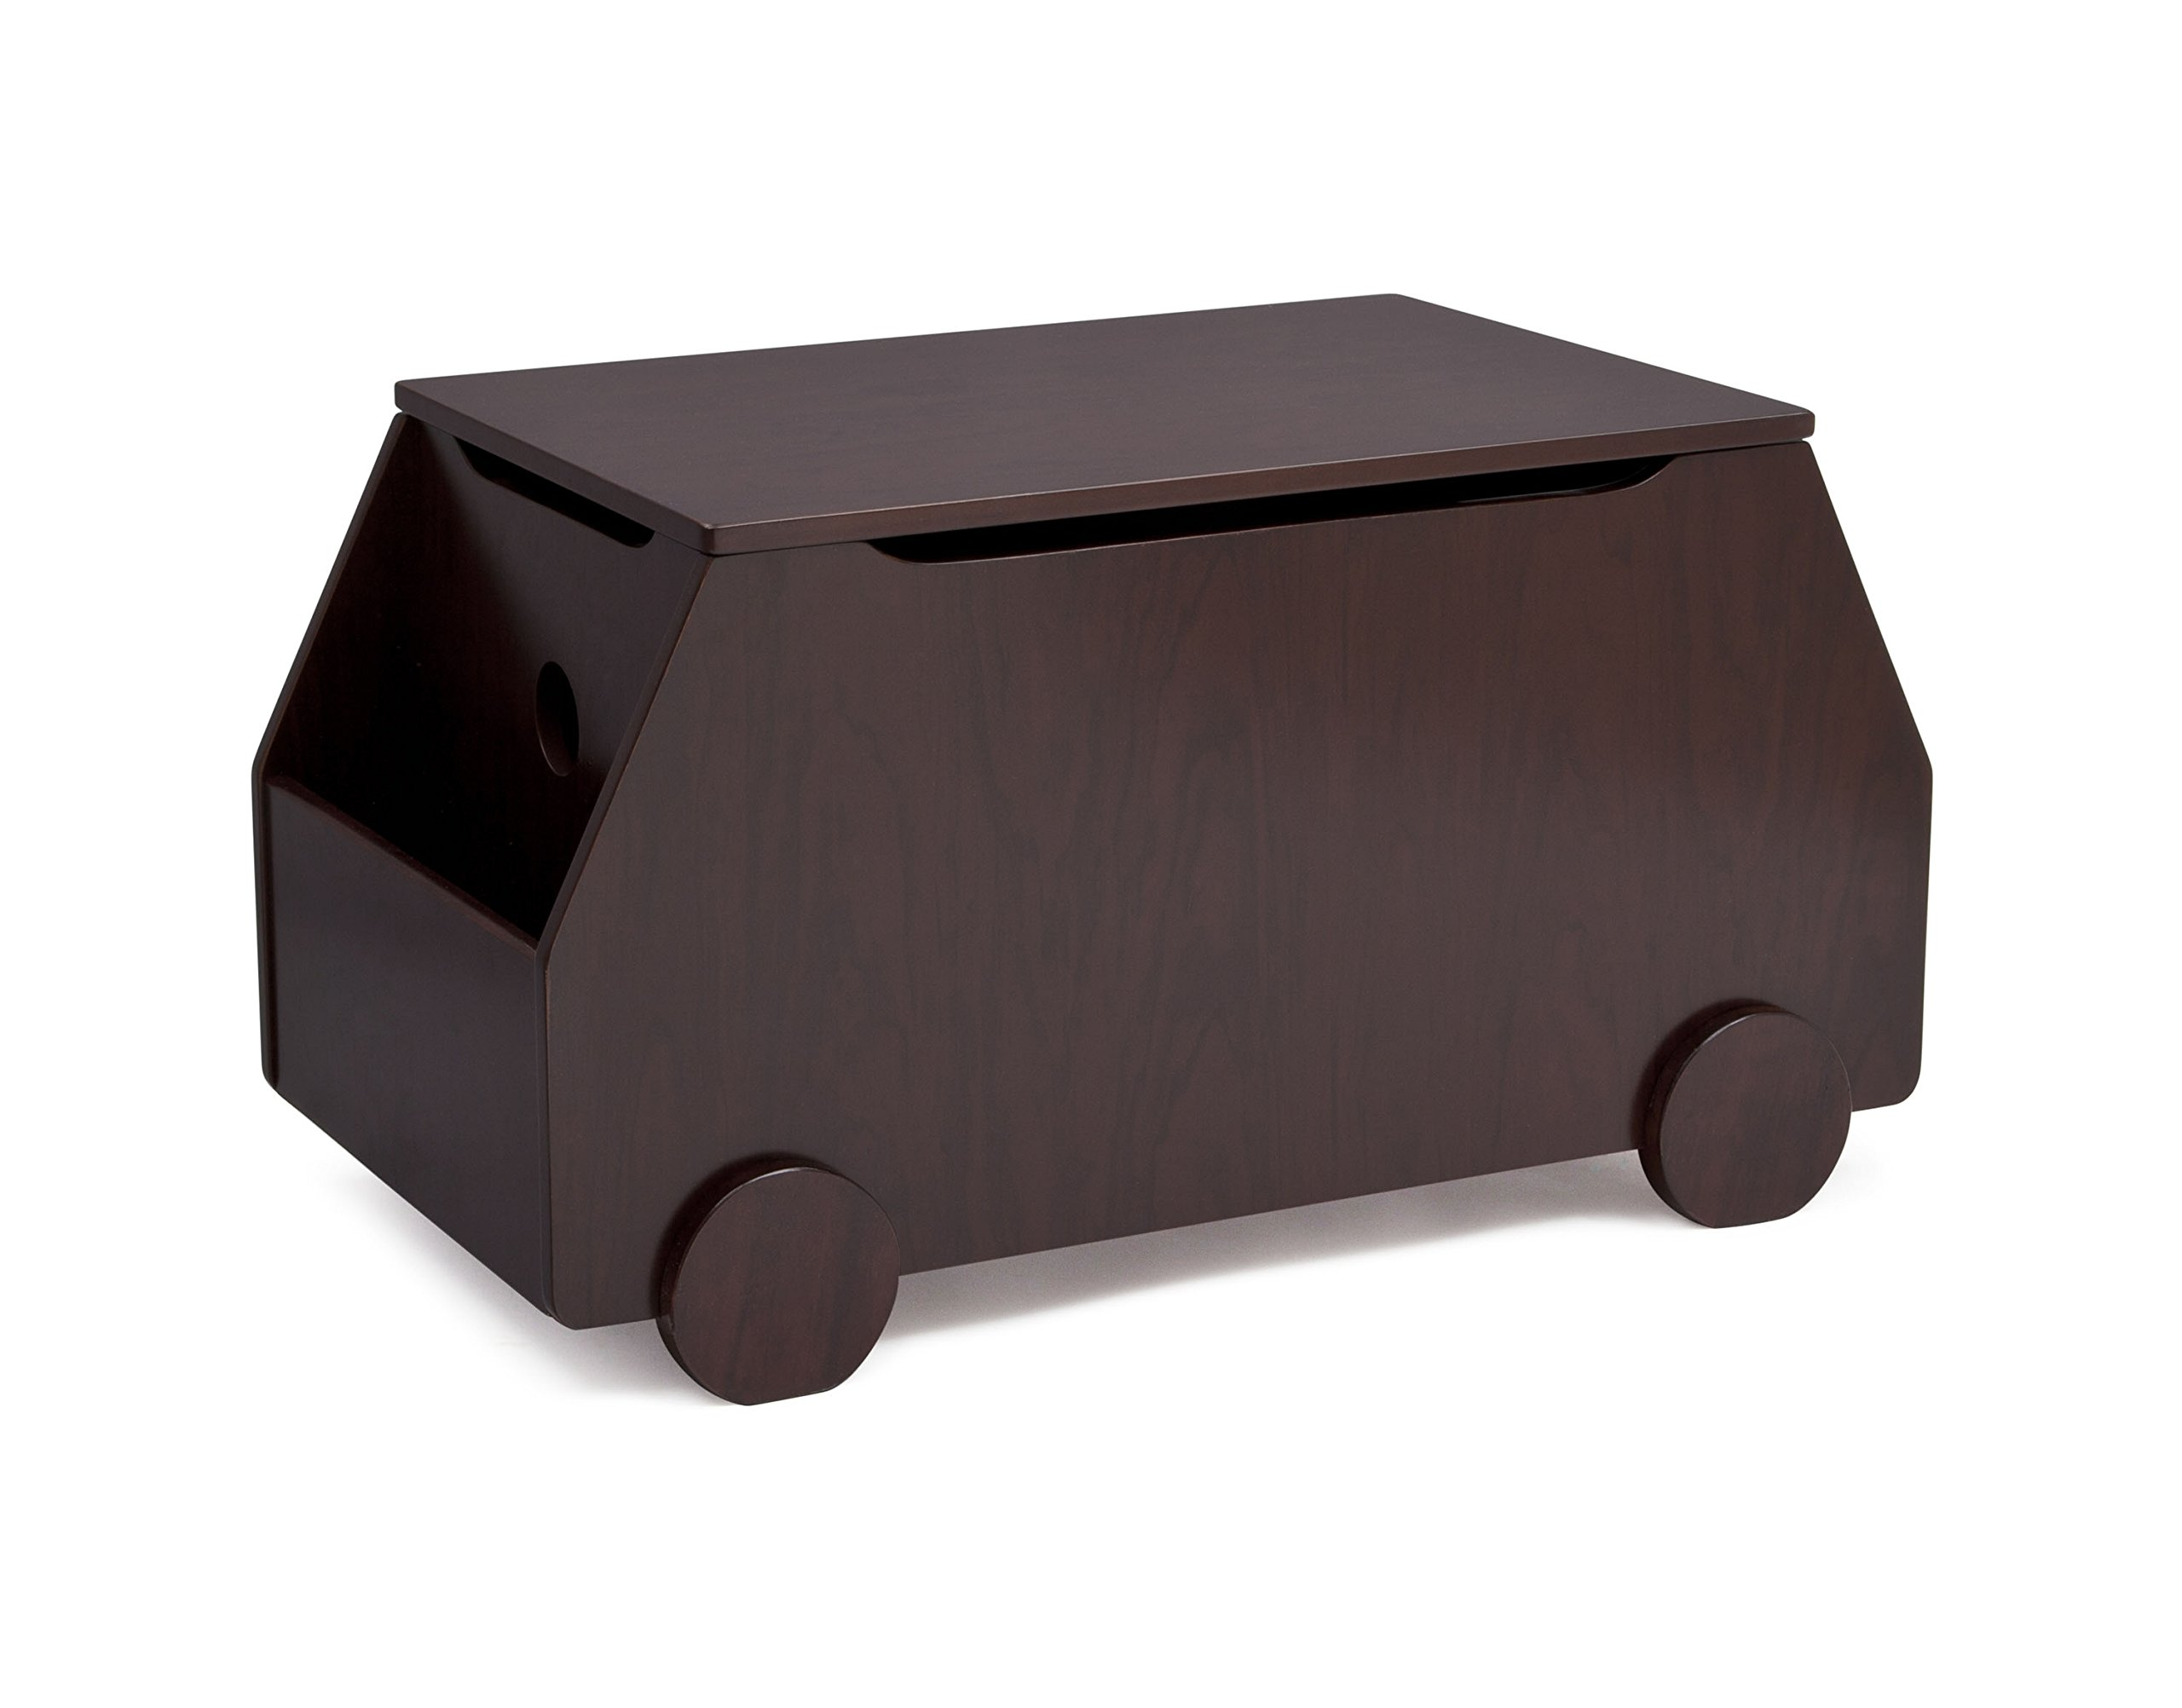 Delta Children Metro Toy Box, Black Cherry Espresso by Delta Children